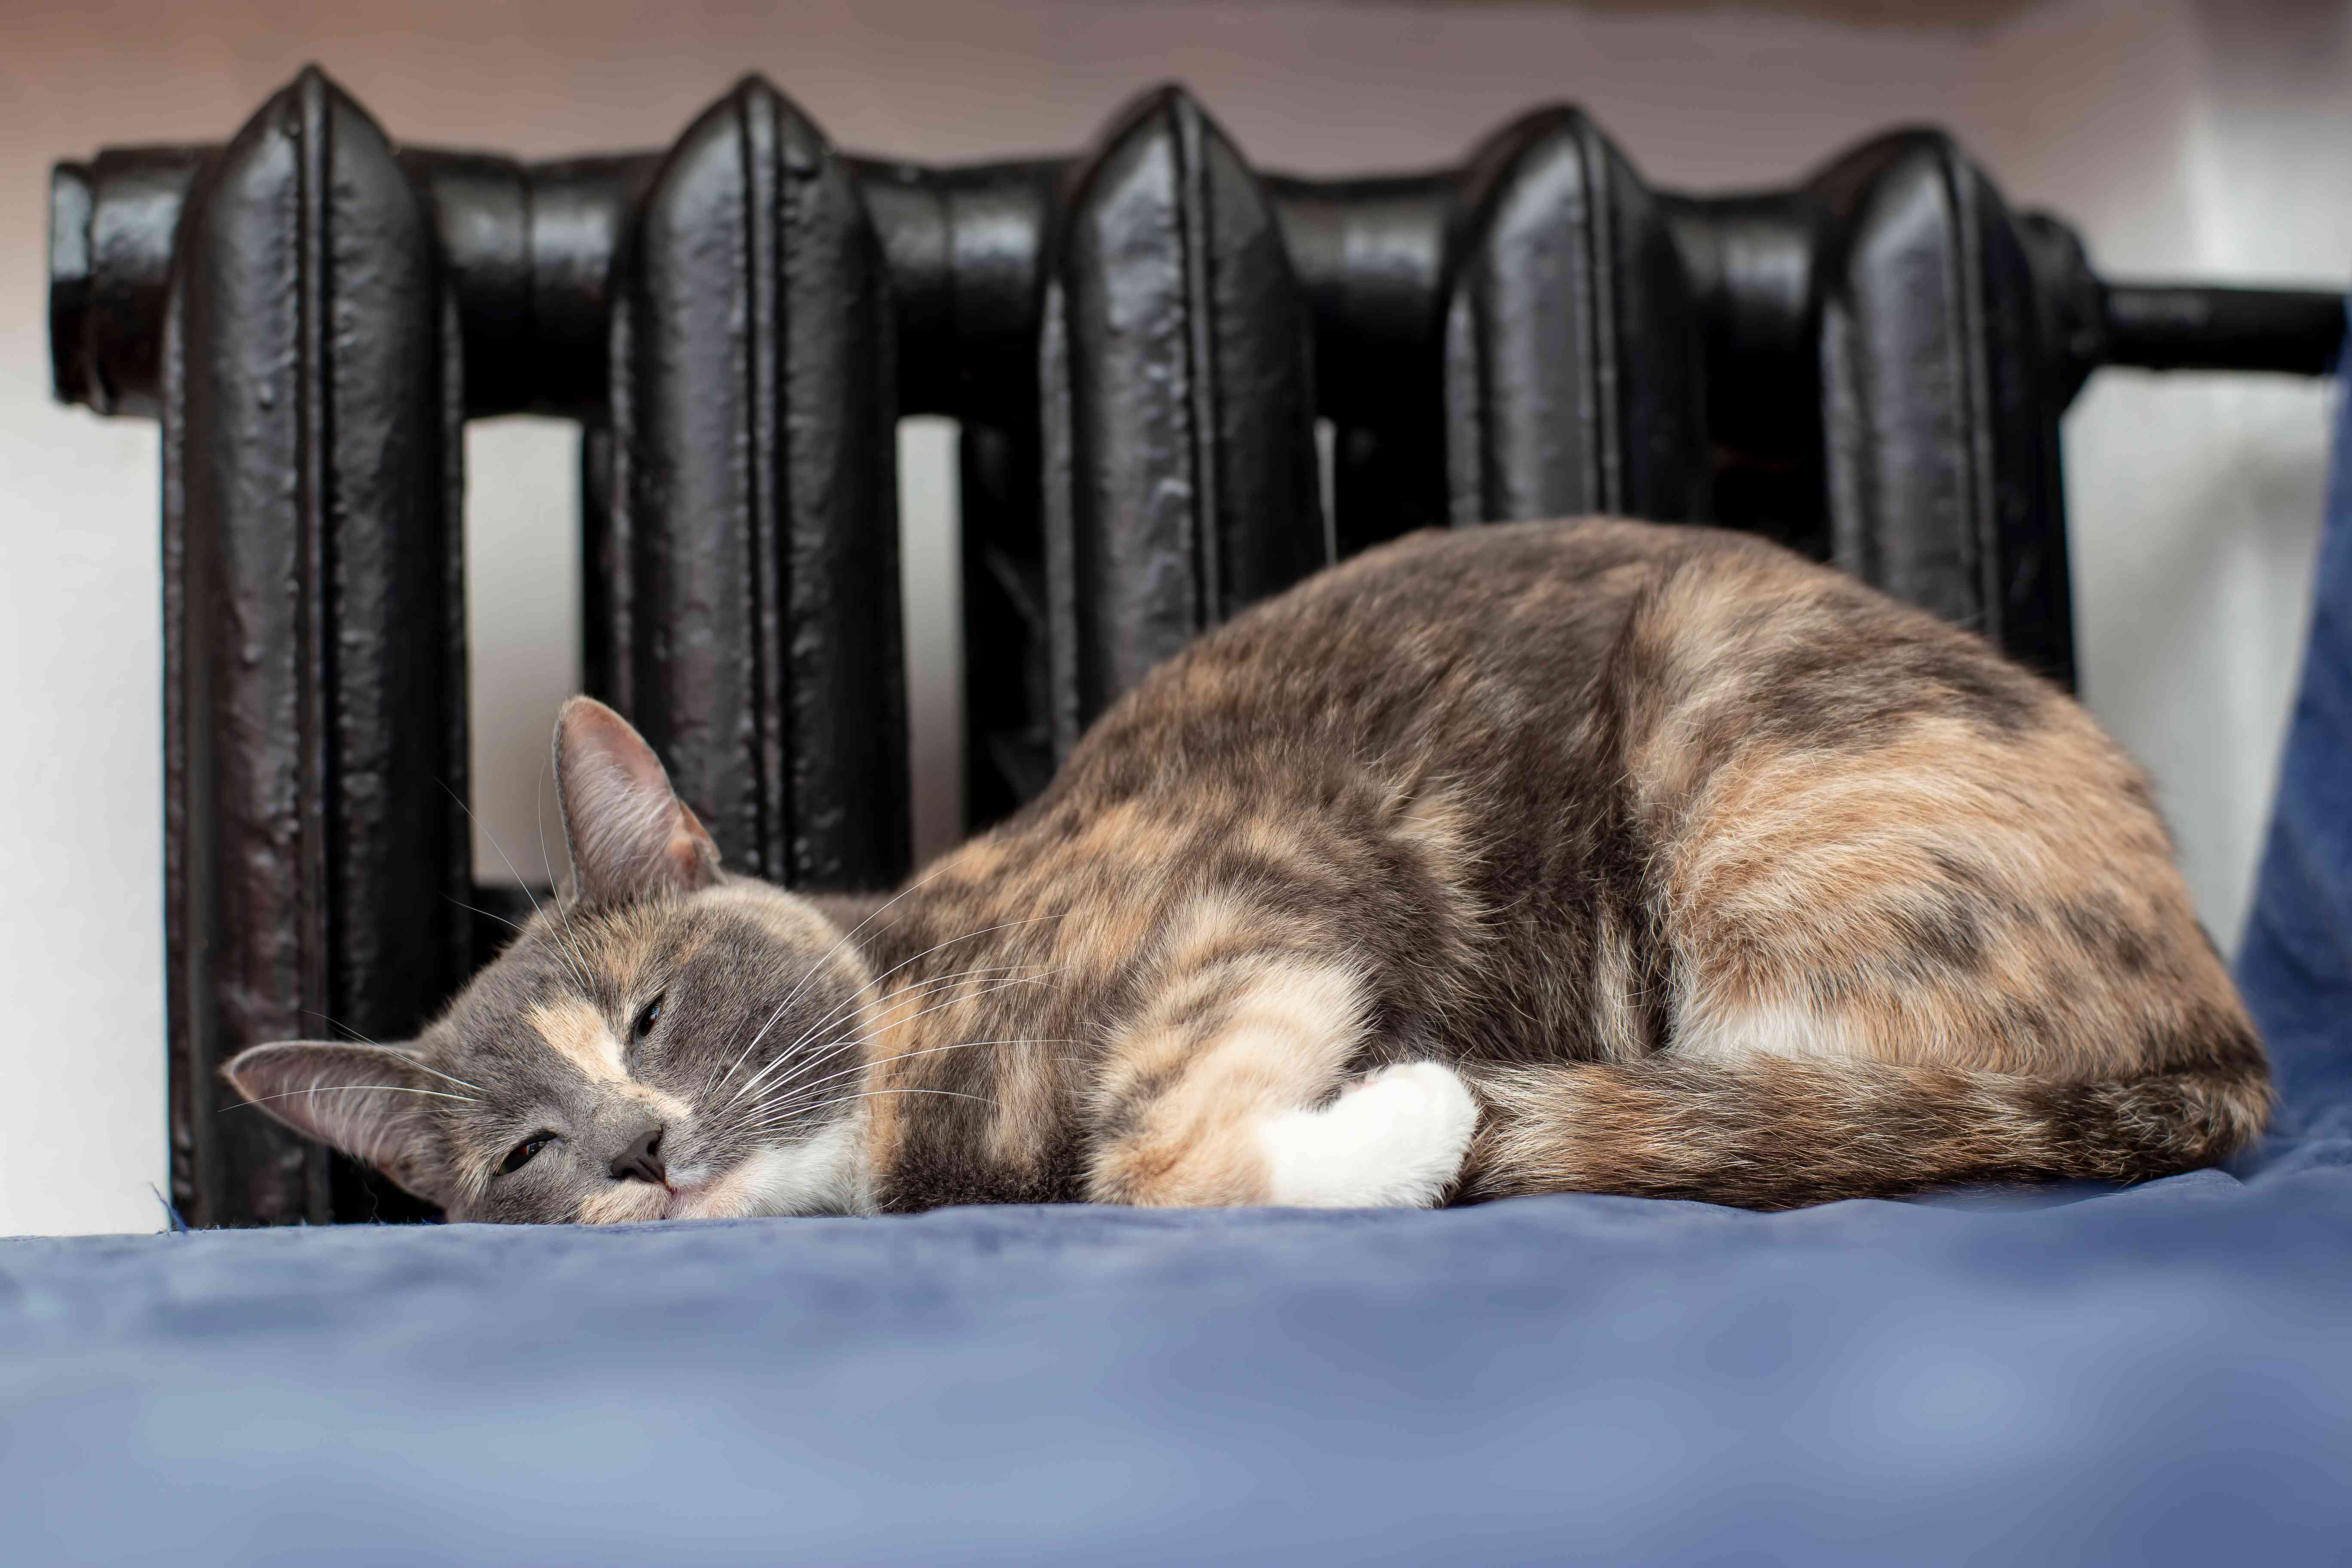 A cat curled up in front of a radiator